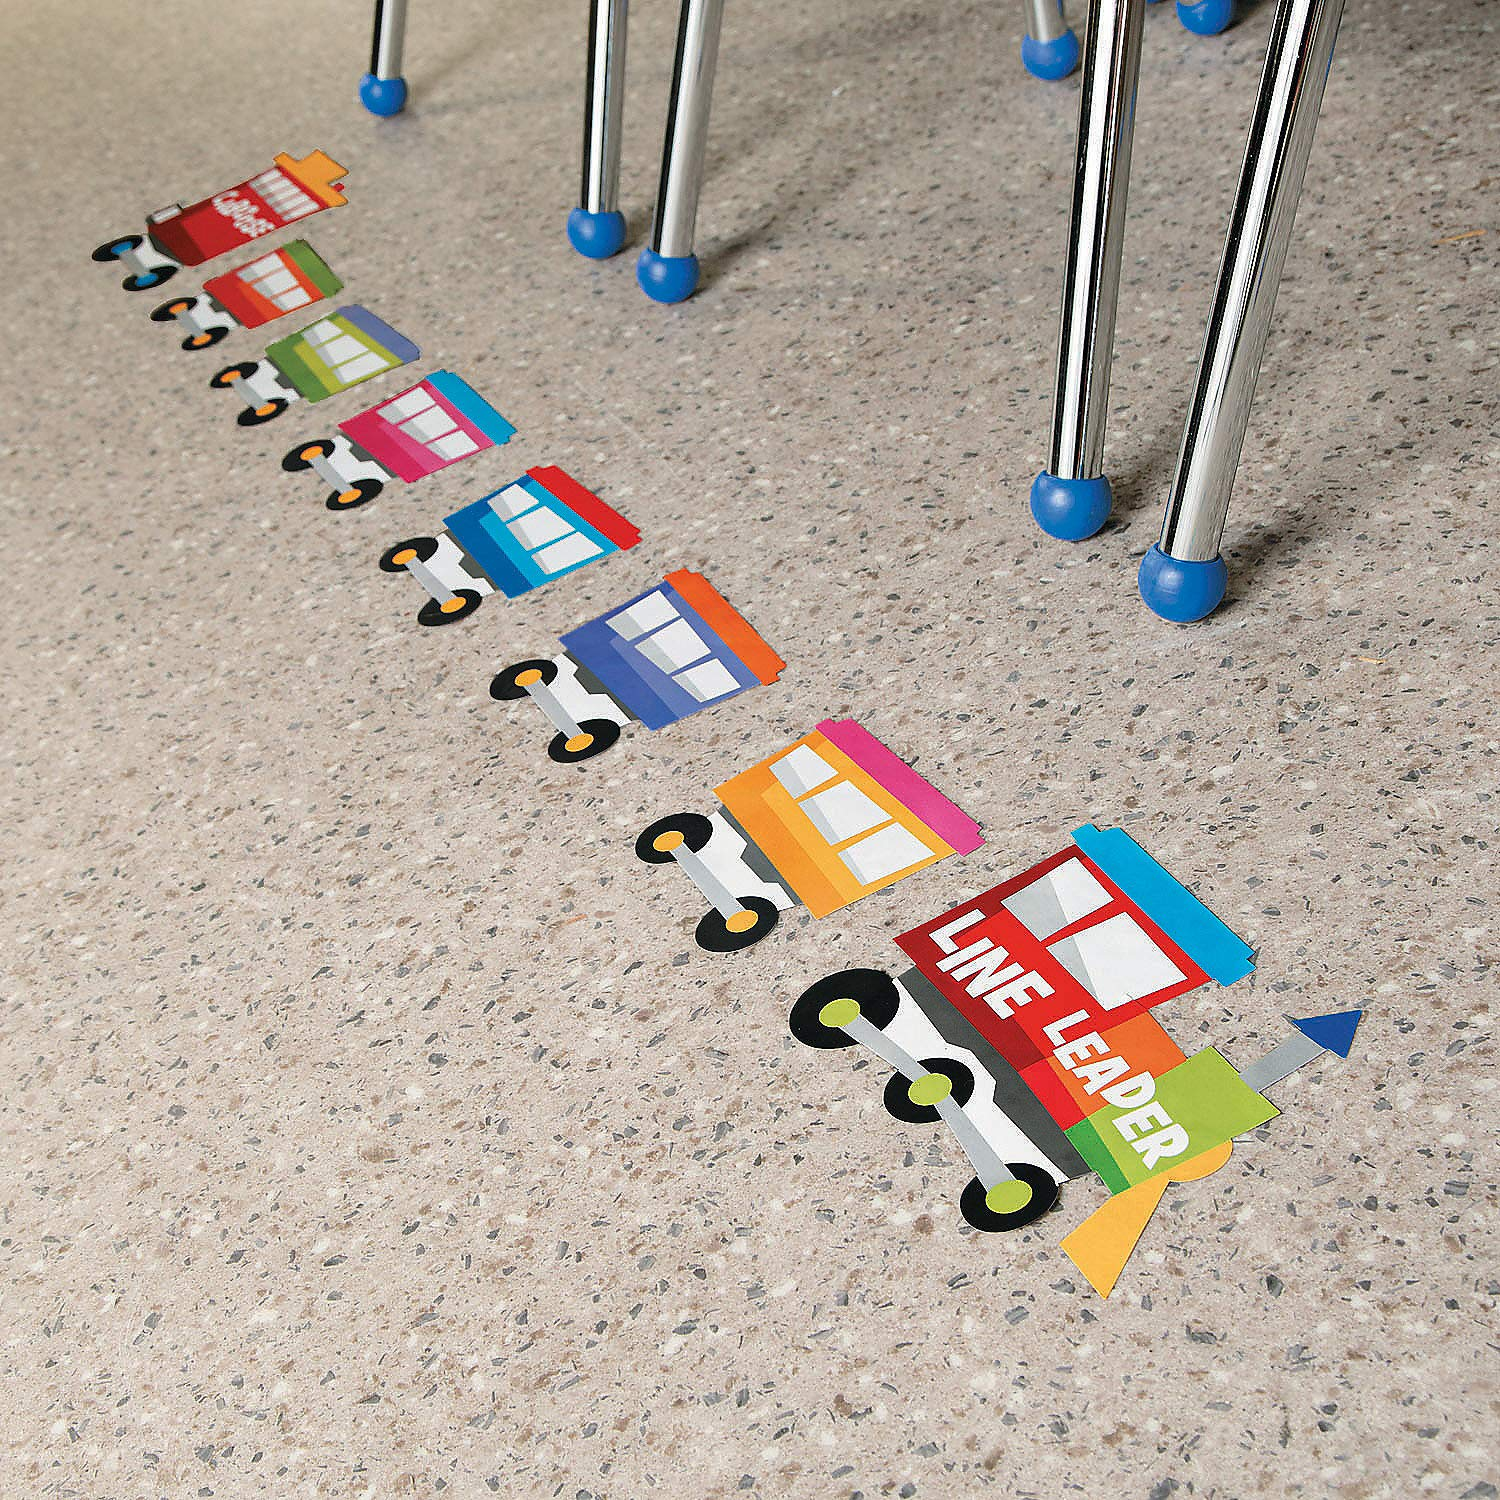 Fun Express Train Floor Clings - Educational Teaching Aids by Fun Express